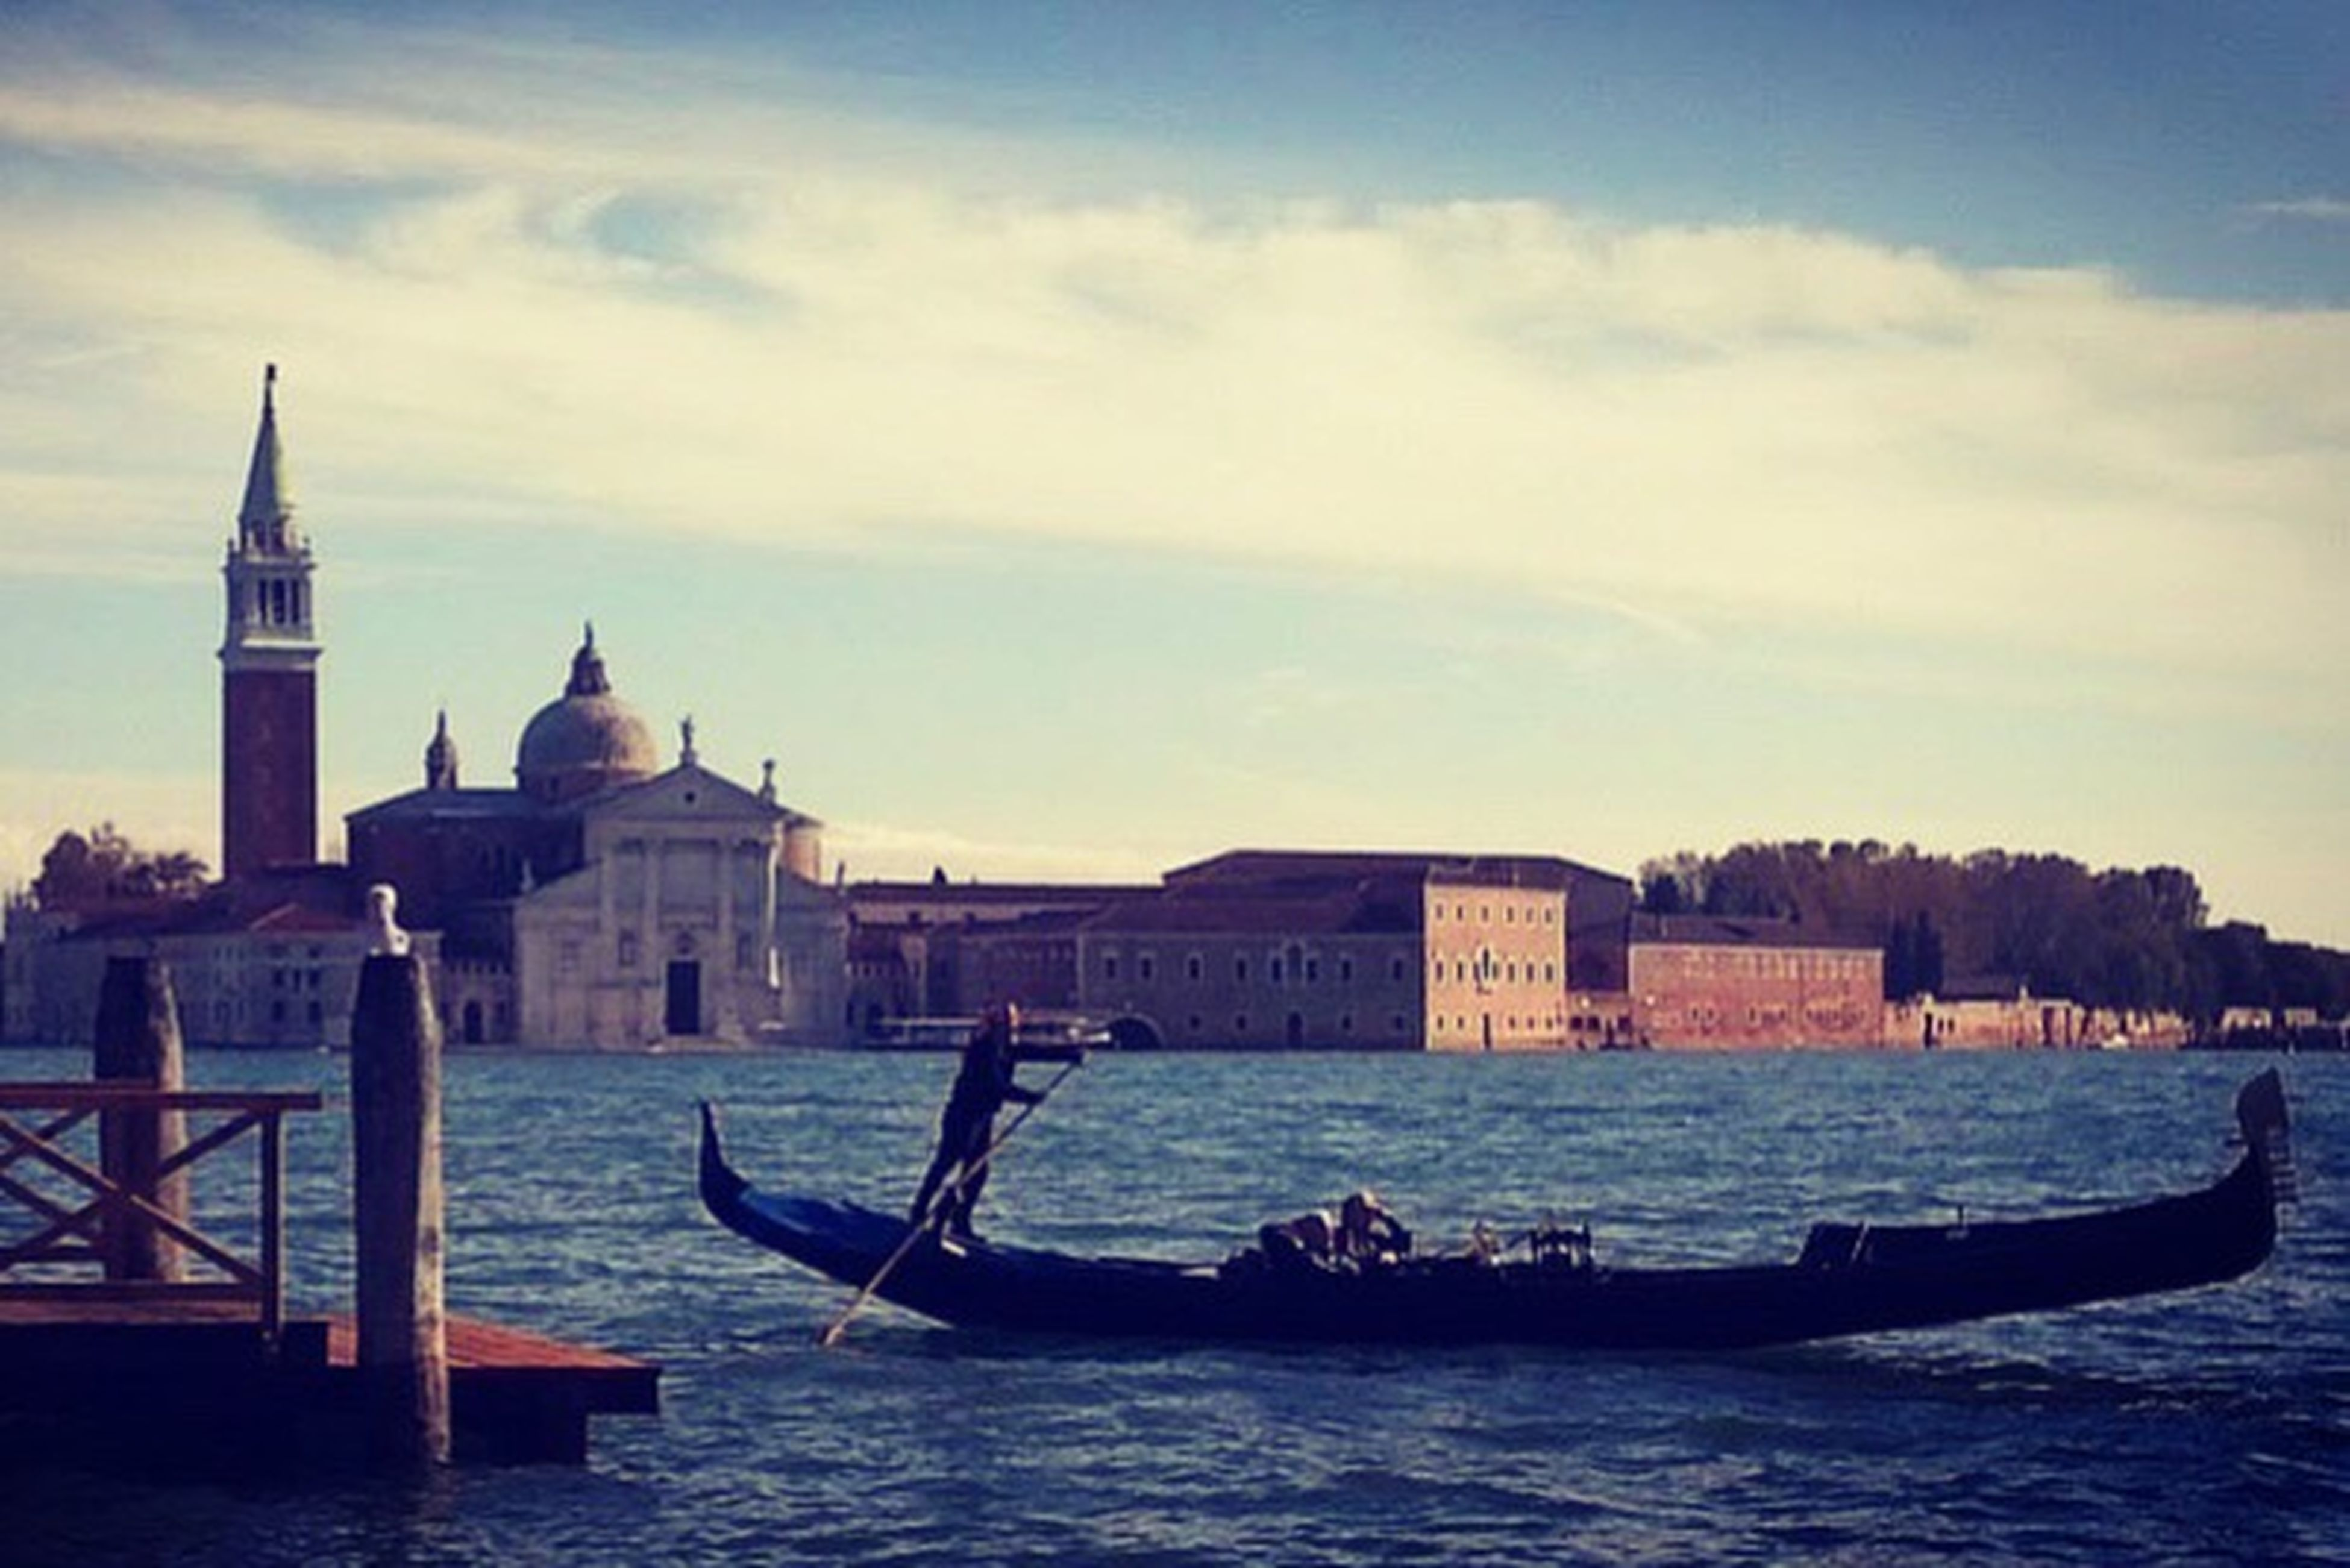 cultures, gondola - traditional boat, travel destinations, nautical vessel, place of worship, sky, architecture, gondolier, outdoors, sculpture, people, day